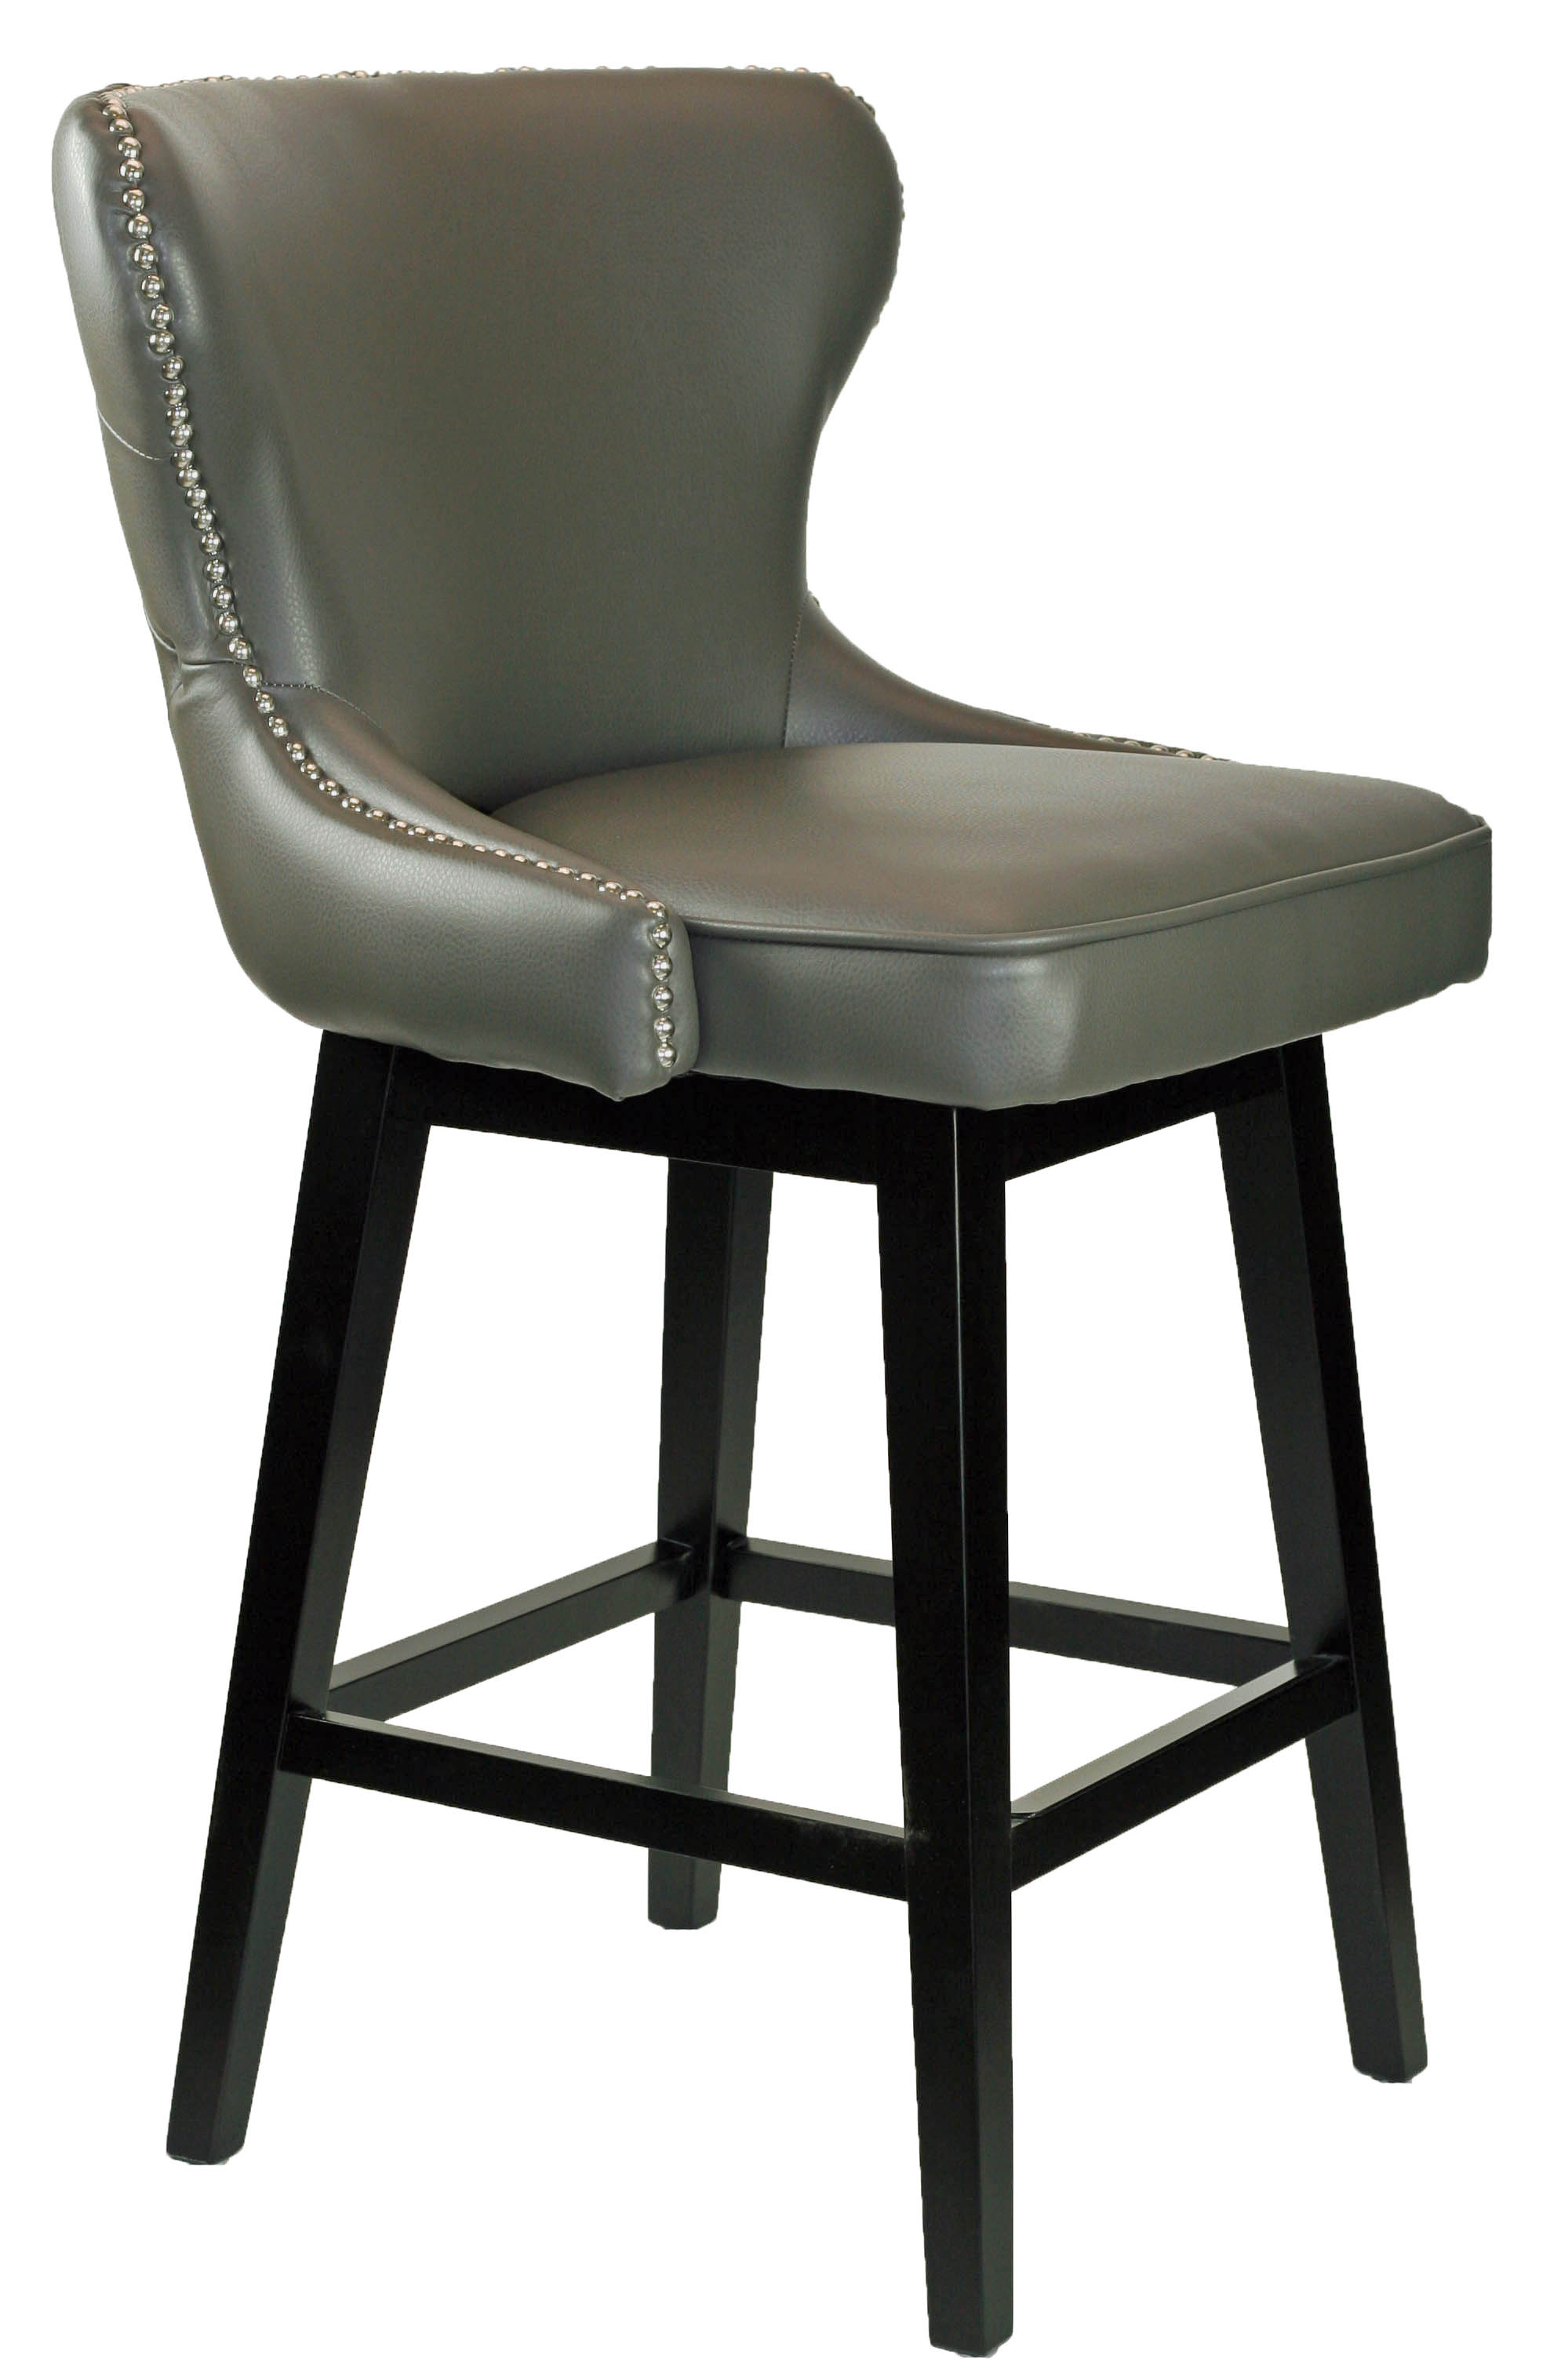 Leather Swivel Bar Stools Bar Stool Leather Swivel